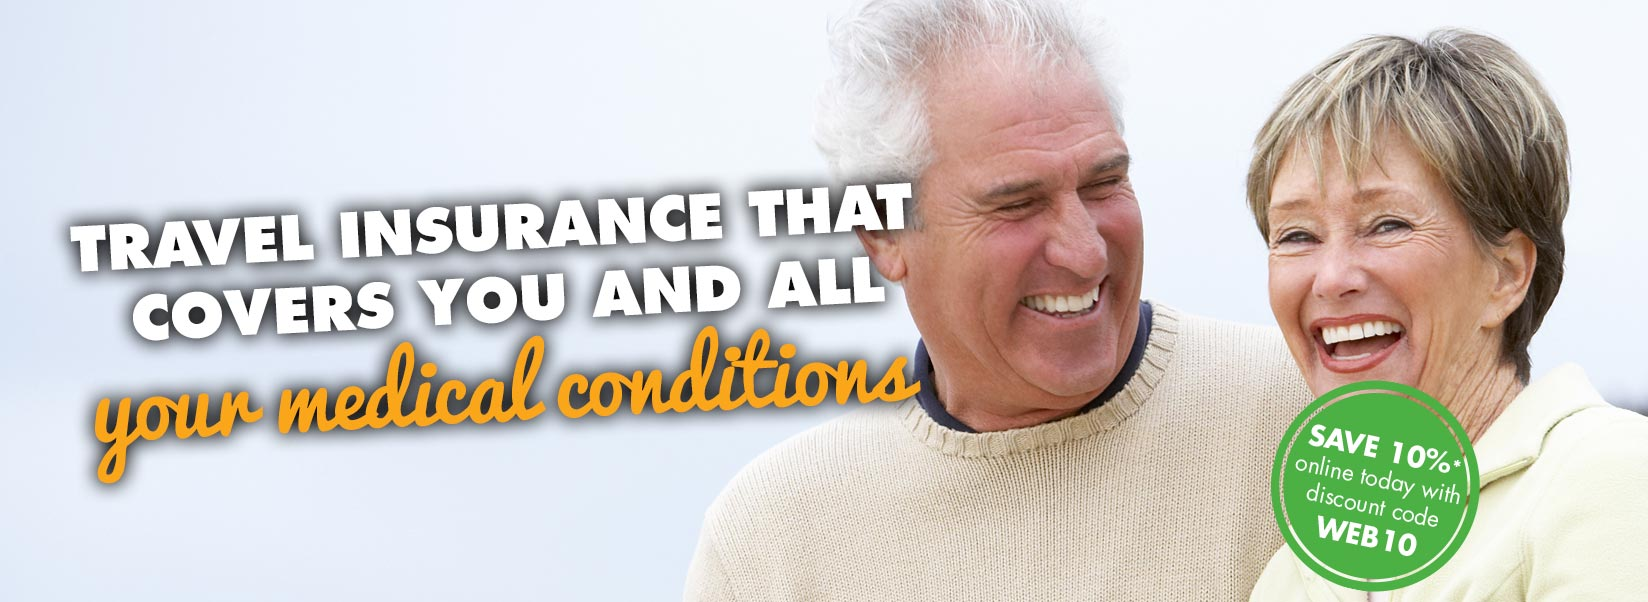 Travel insurance that covers you and all you medical conditions